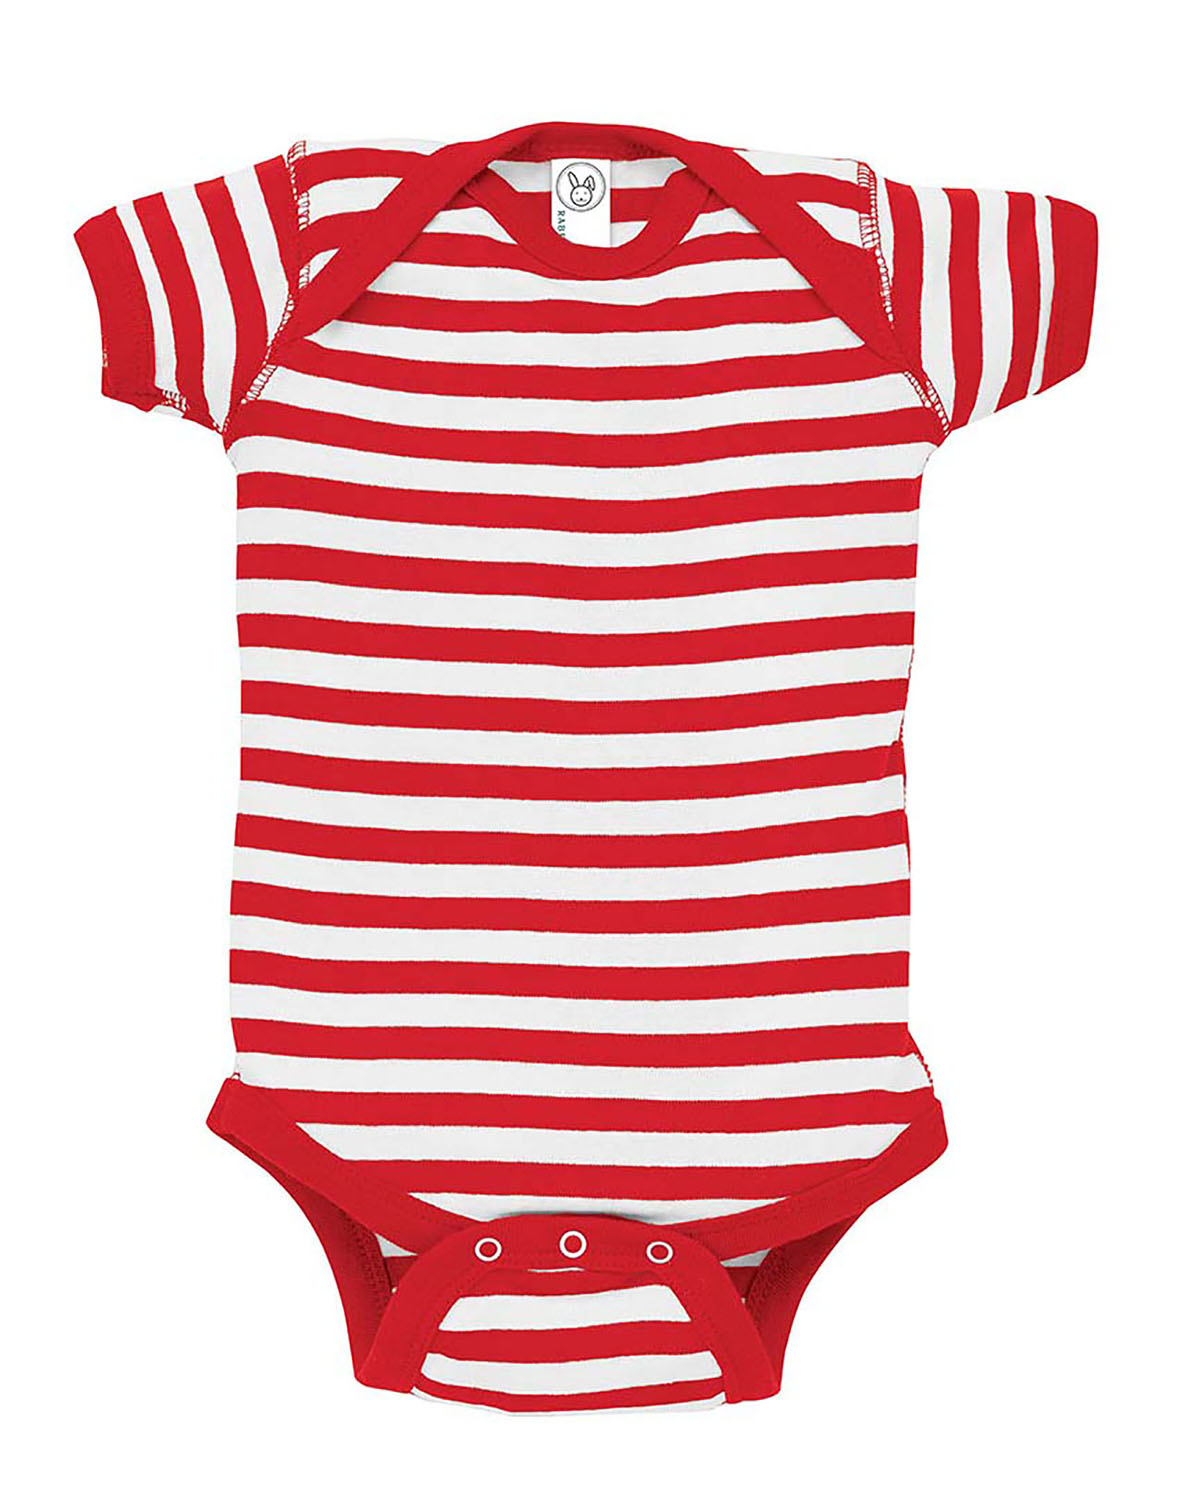 click to view Red/ Wht Stripe